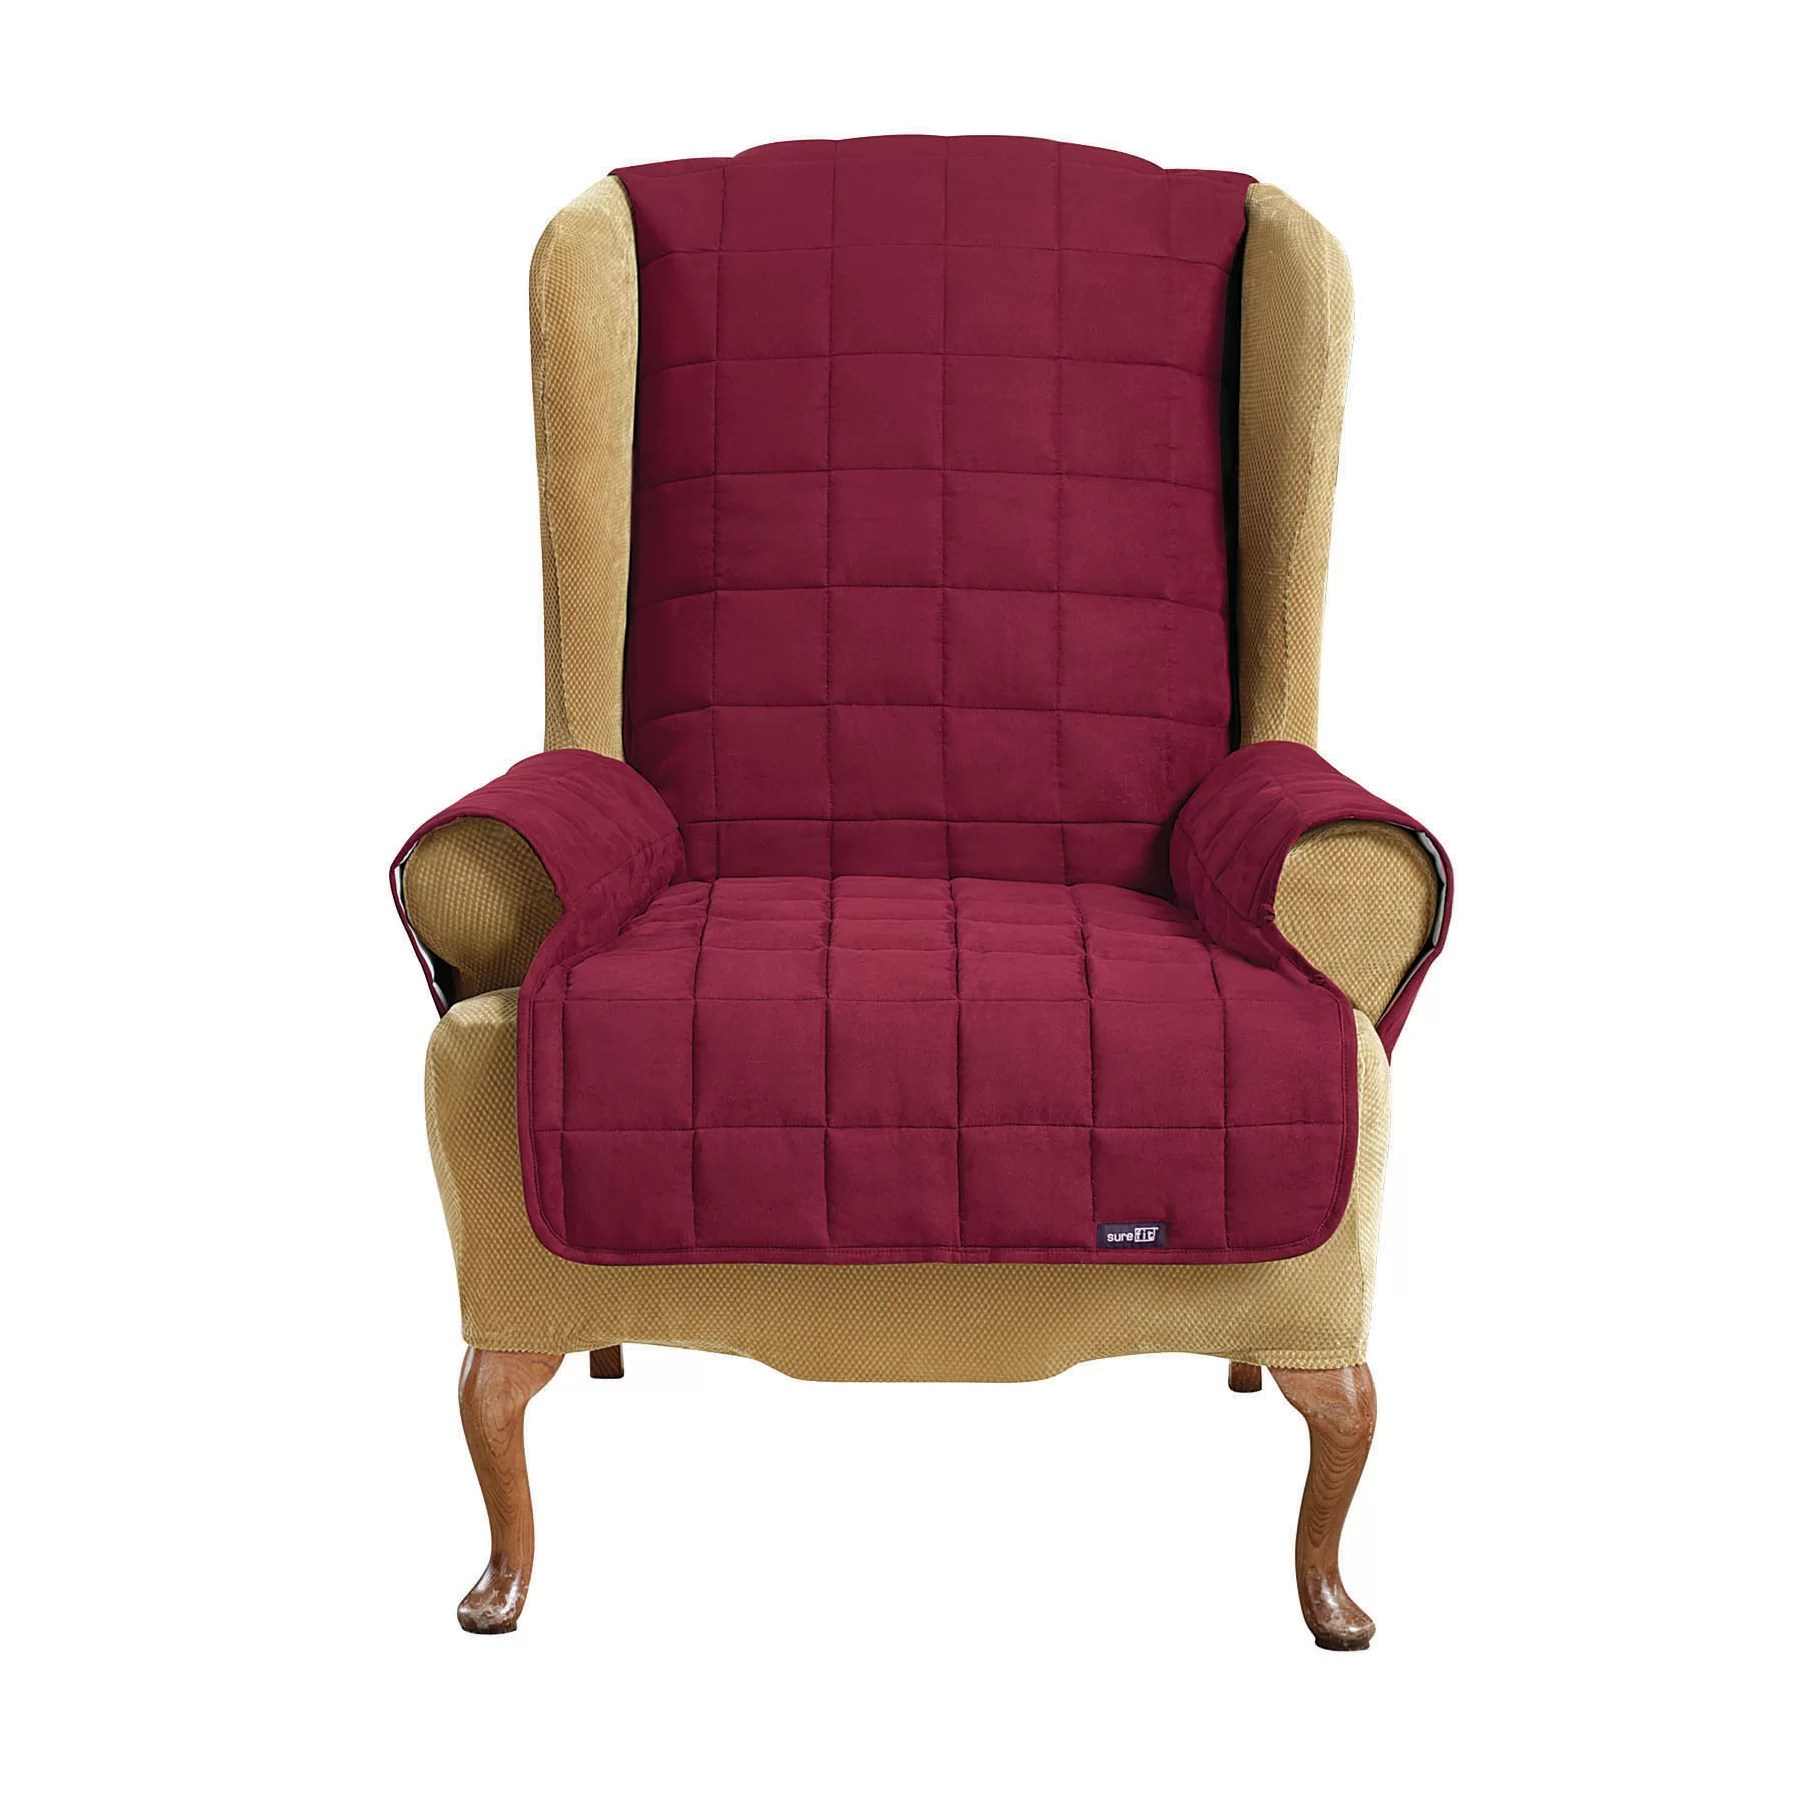 slipcovers for wingback chairs with t cushion barrel swivel casters sure fit soft suade wing chair slipcover